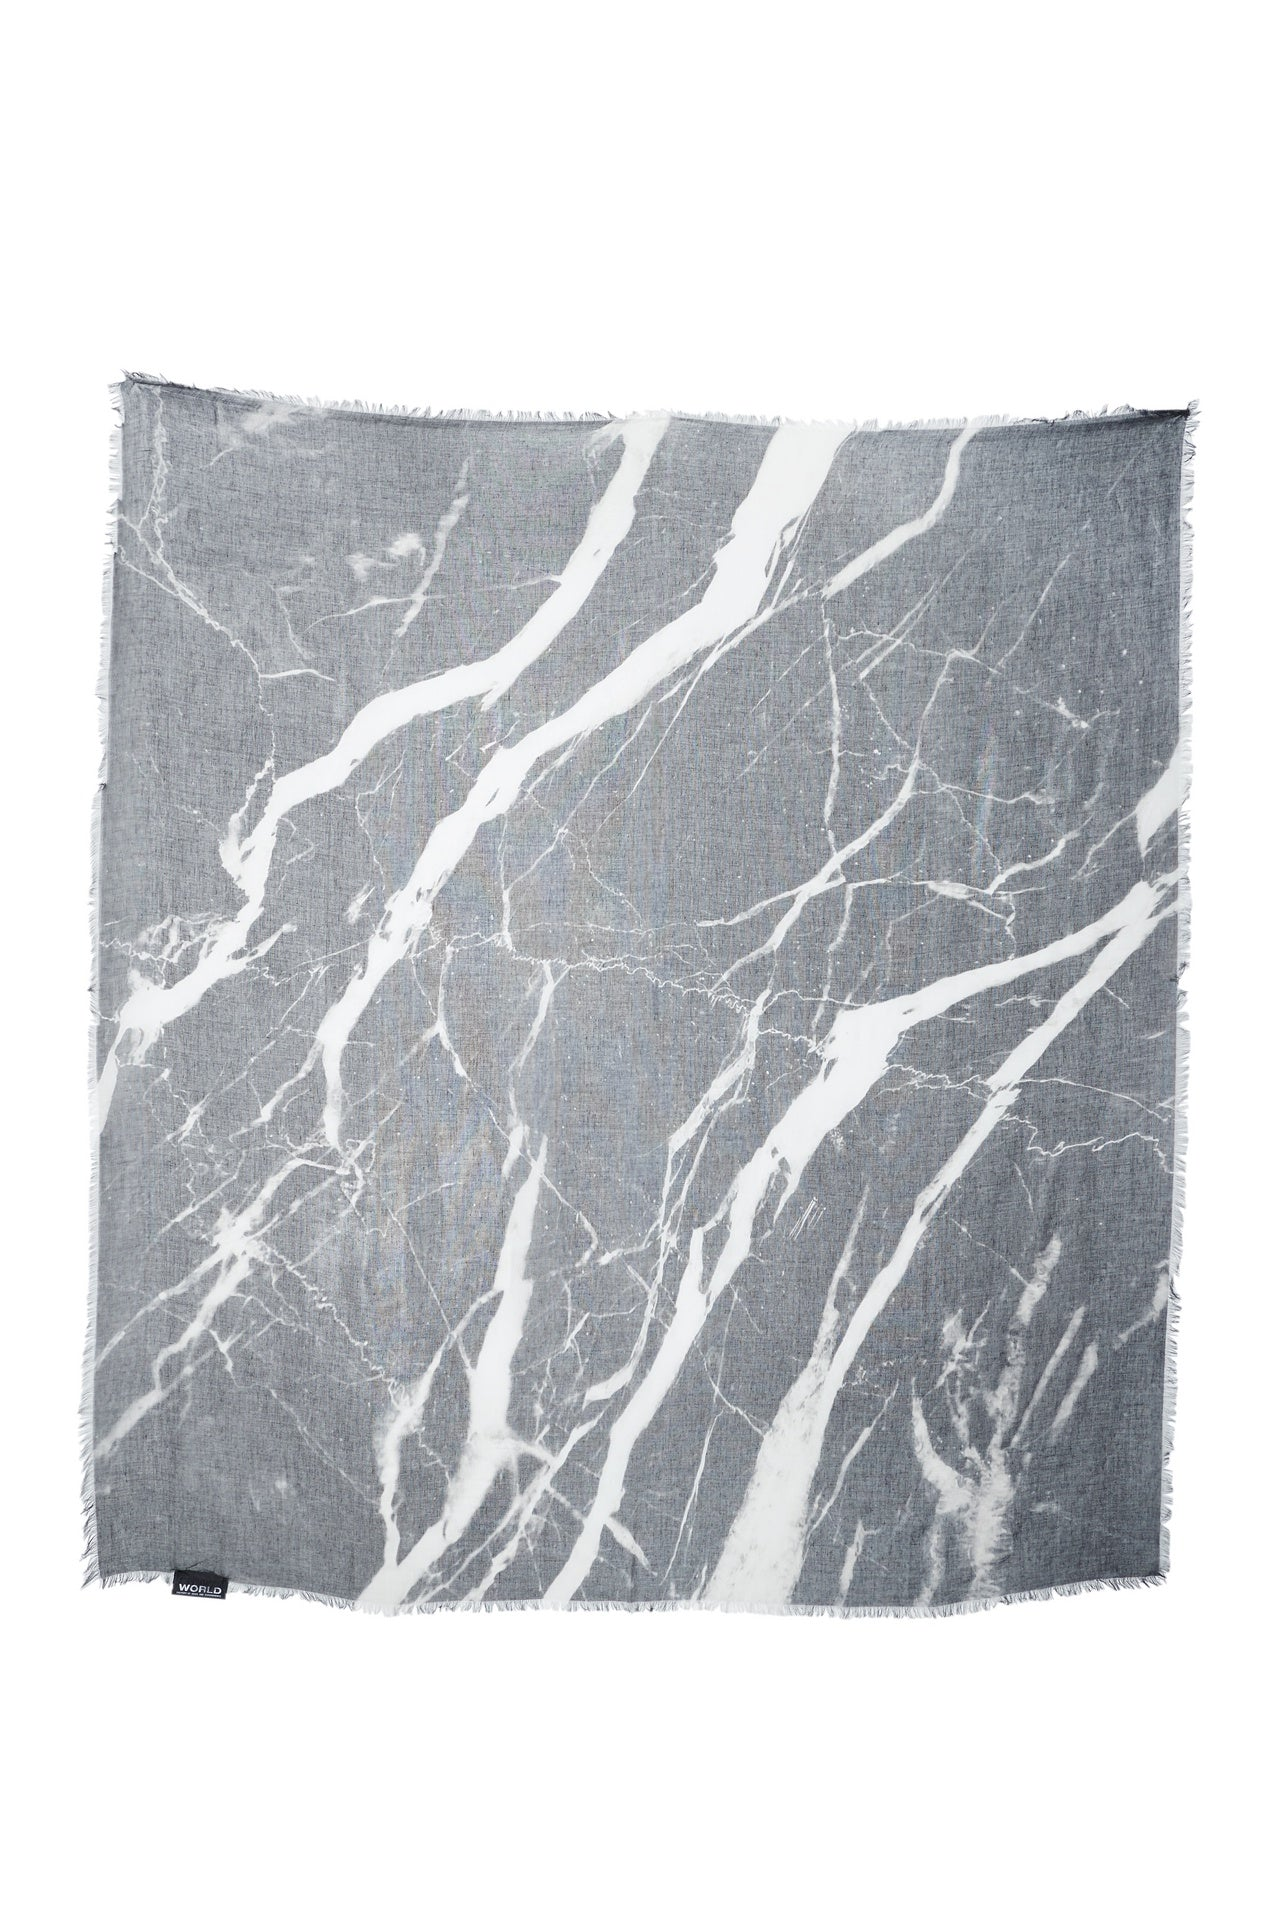 WORLD Marble Cashmere Scarf 140x140cm